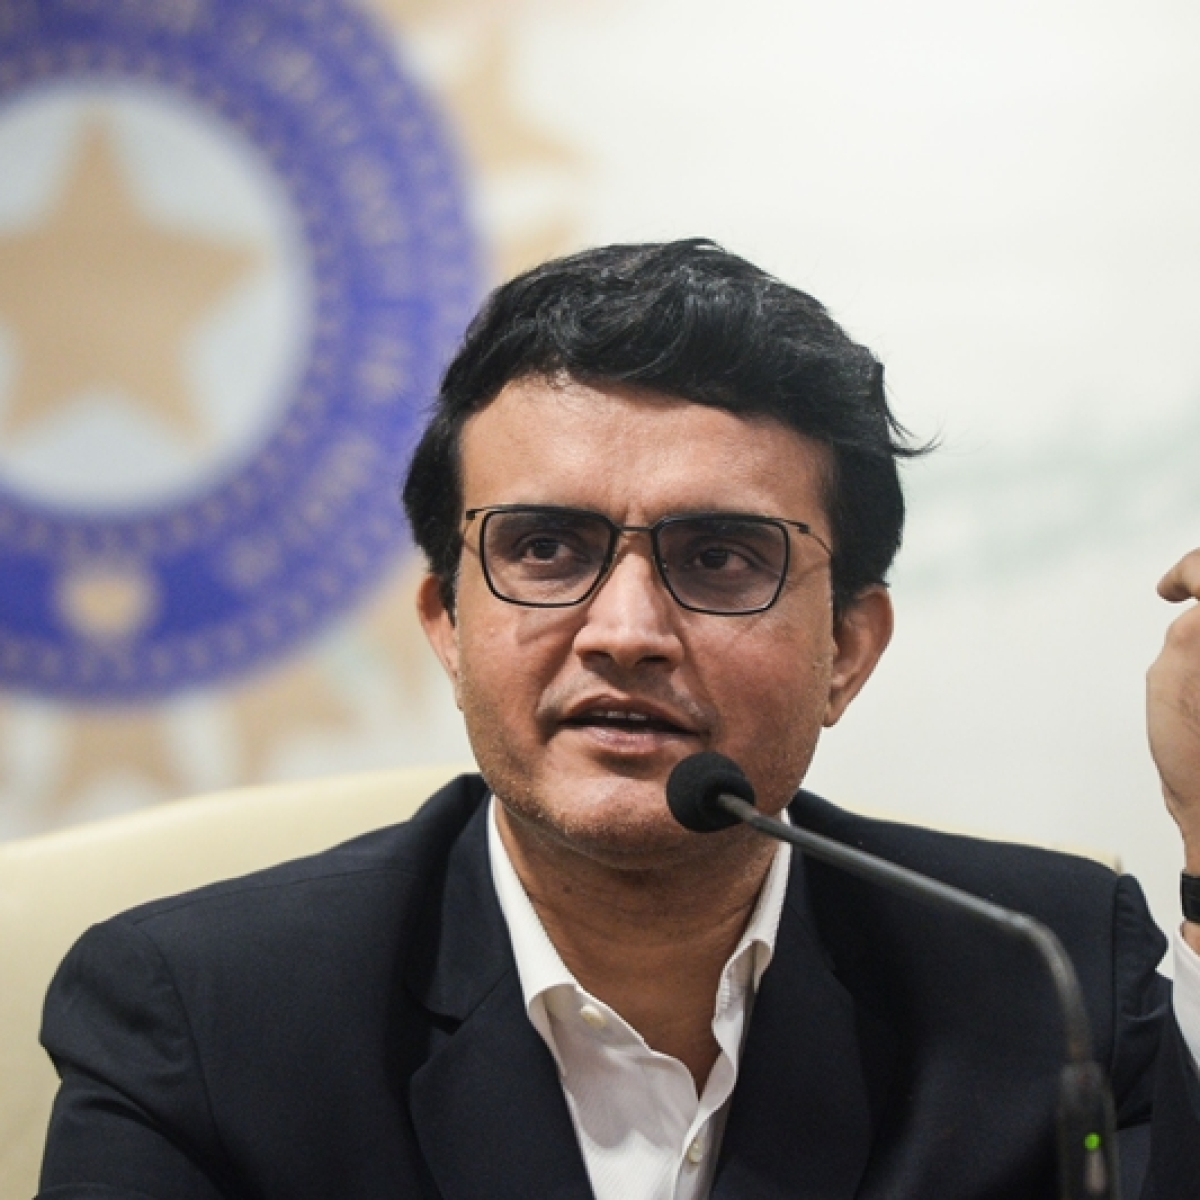 We all got carried away after NatWest final win, says Sourav Ganguly